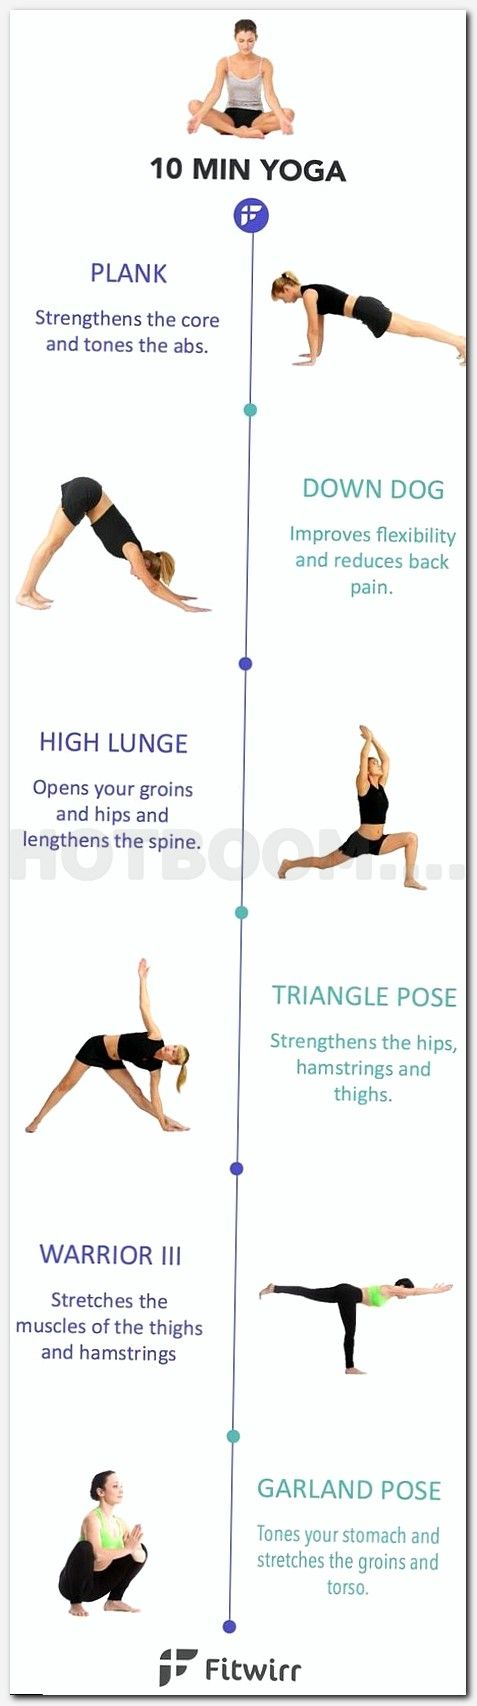 The human brain coloring book diamond - Yoga Poses For Buttocks Reduction Hatha Yoga Definition Men Hot Yoga What Is